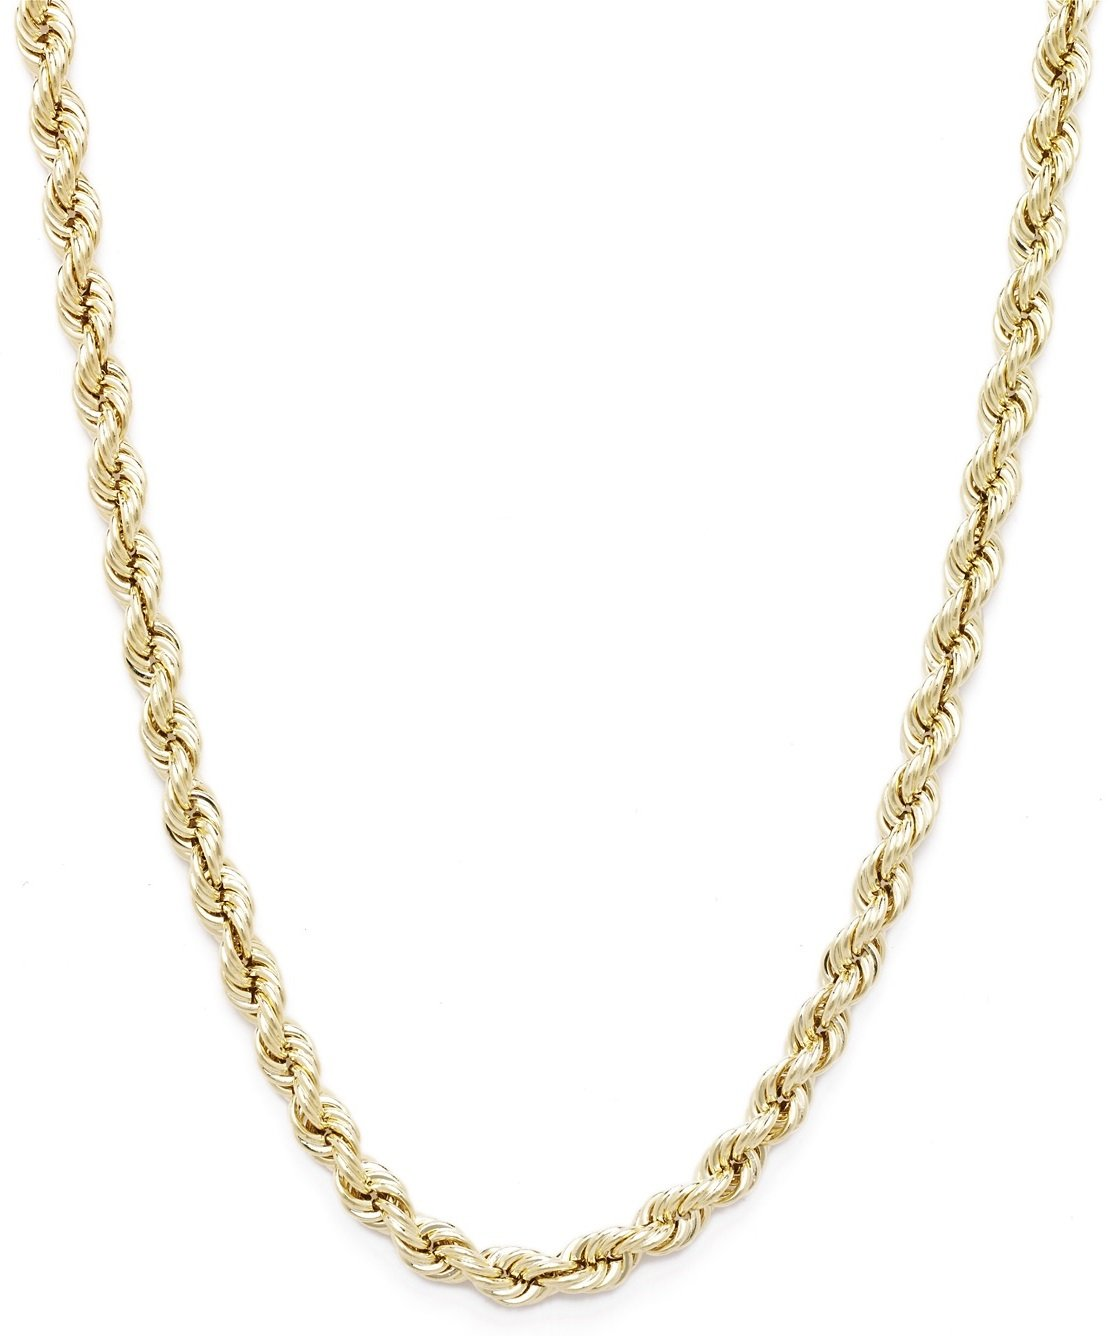 20 Inch Hollow Rope Chain Necklace w/ Lobster Claw Clasp for Men & Women, 2mm, 10k Yellow Gold